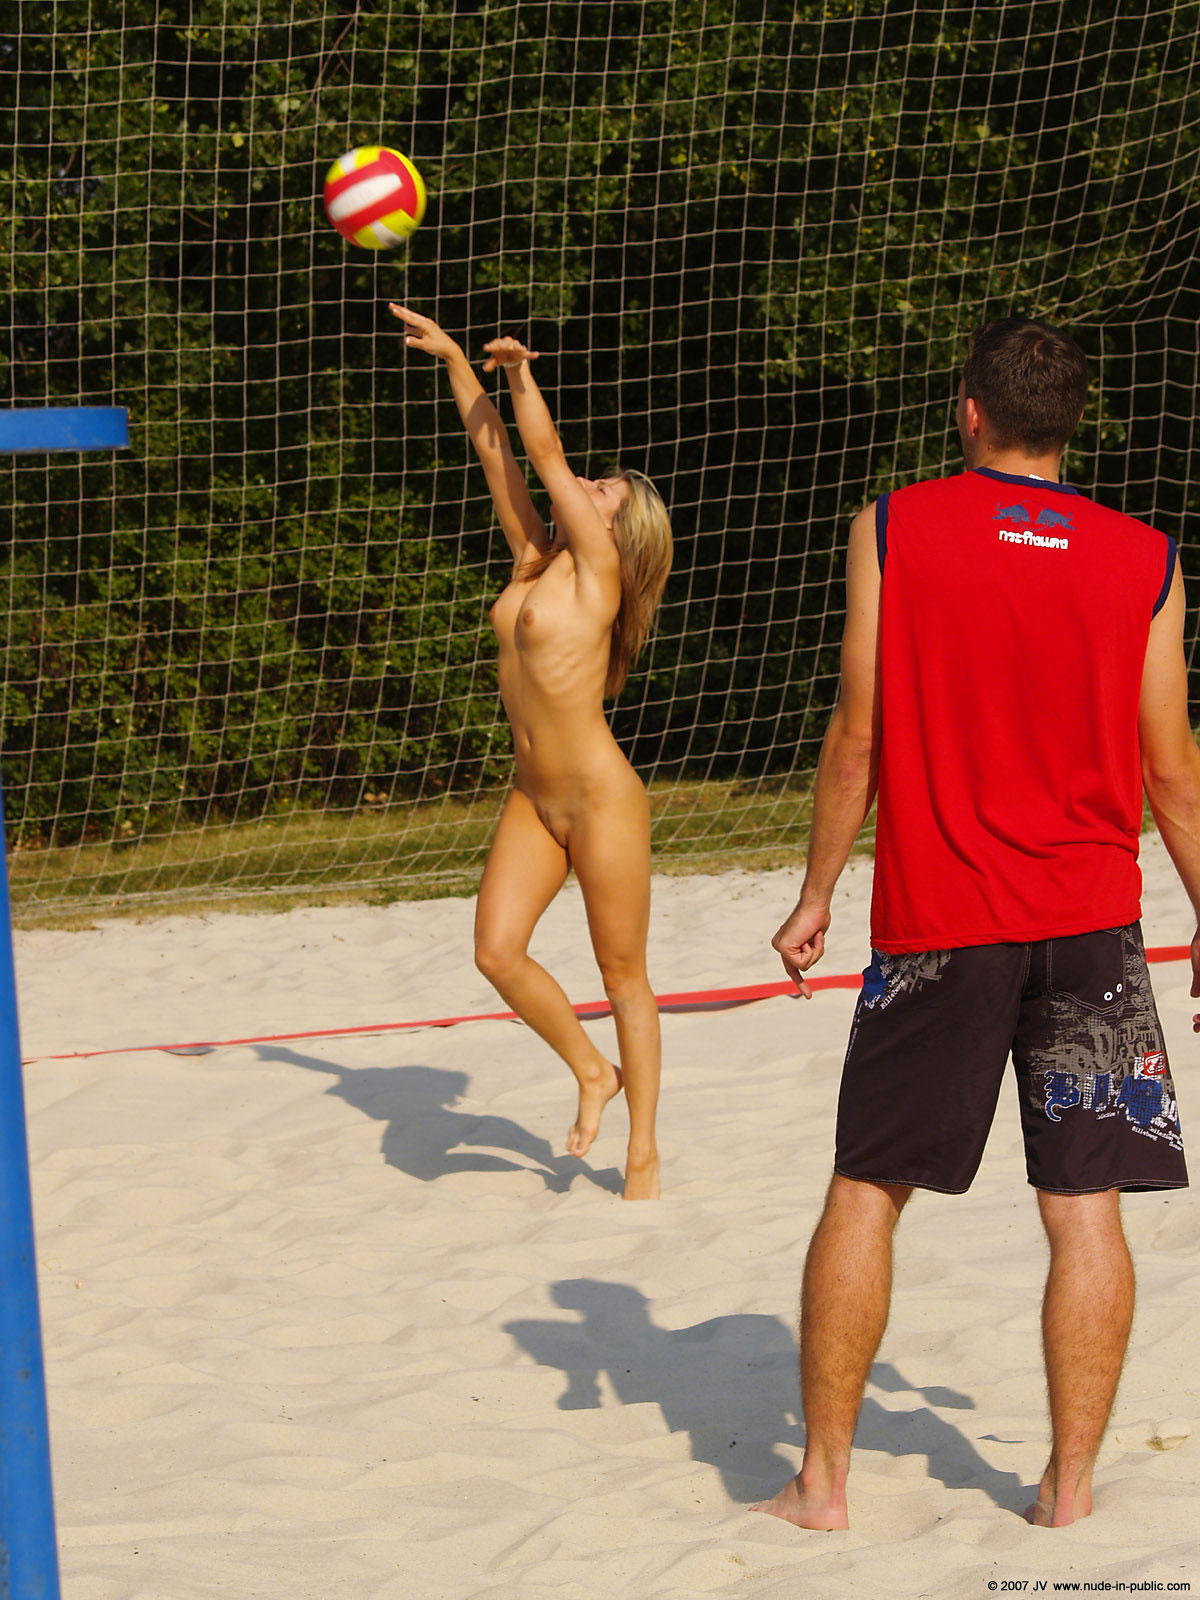 The sexy volleyball girl naked